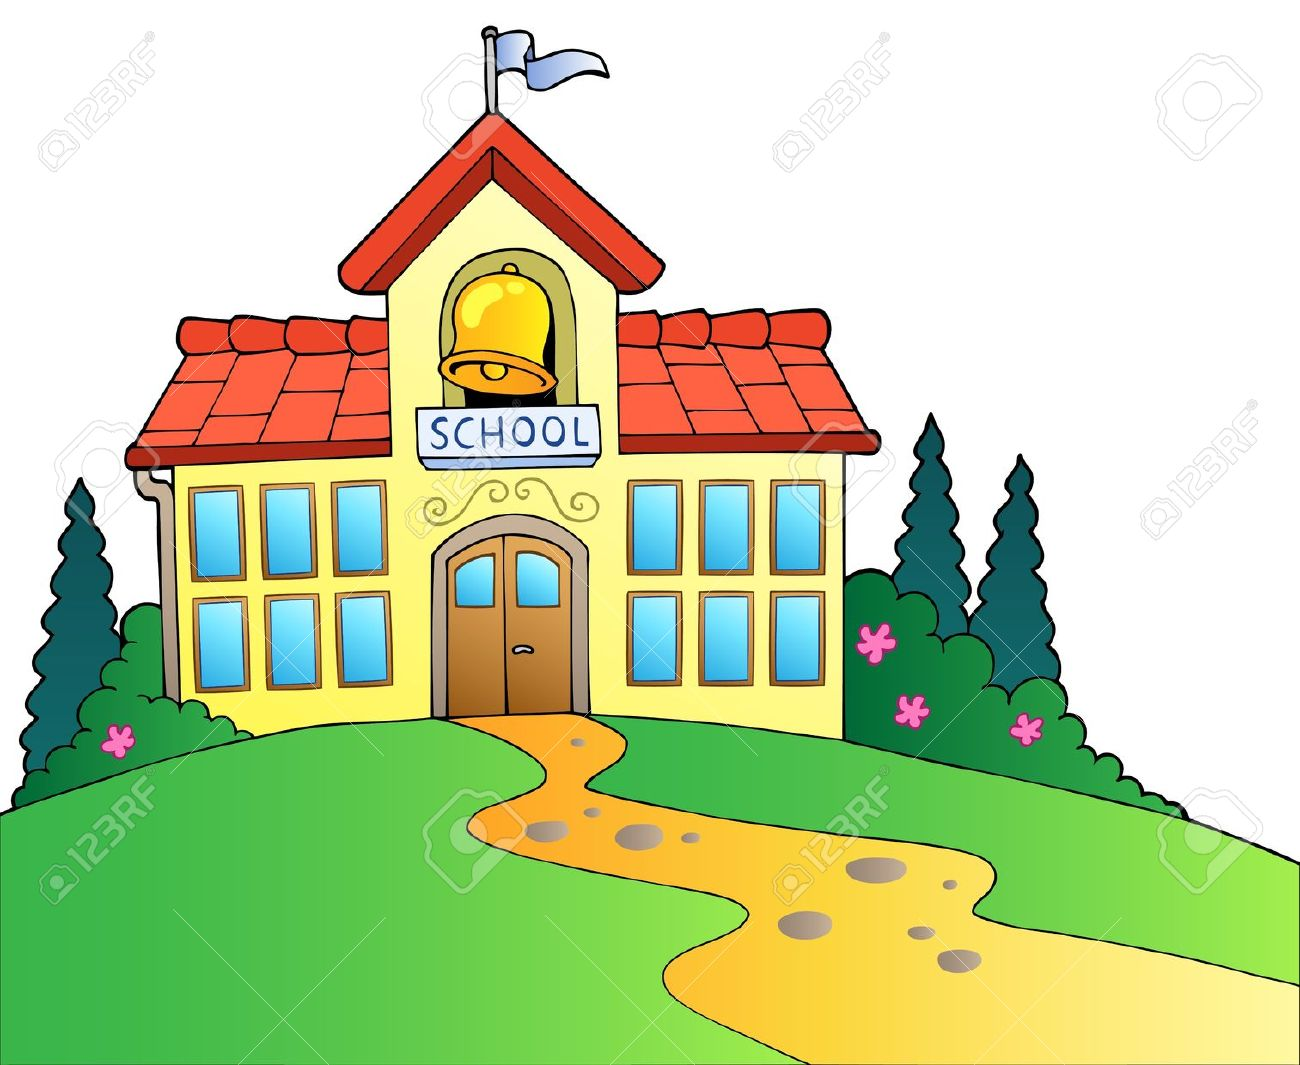 school cafeteria building clipart clipground school clipart images school clip art free